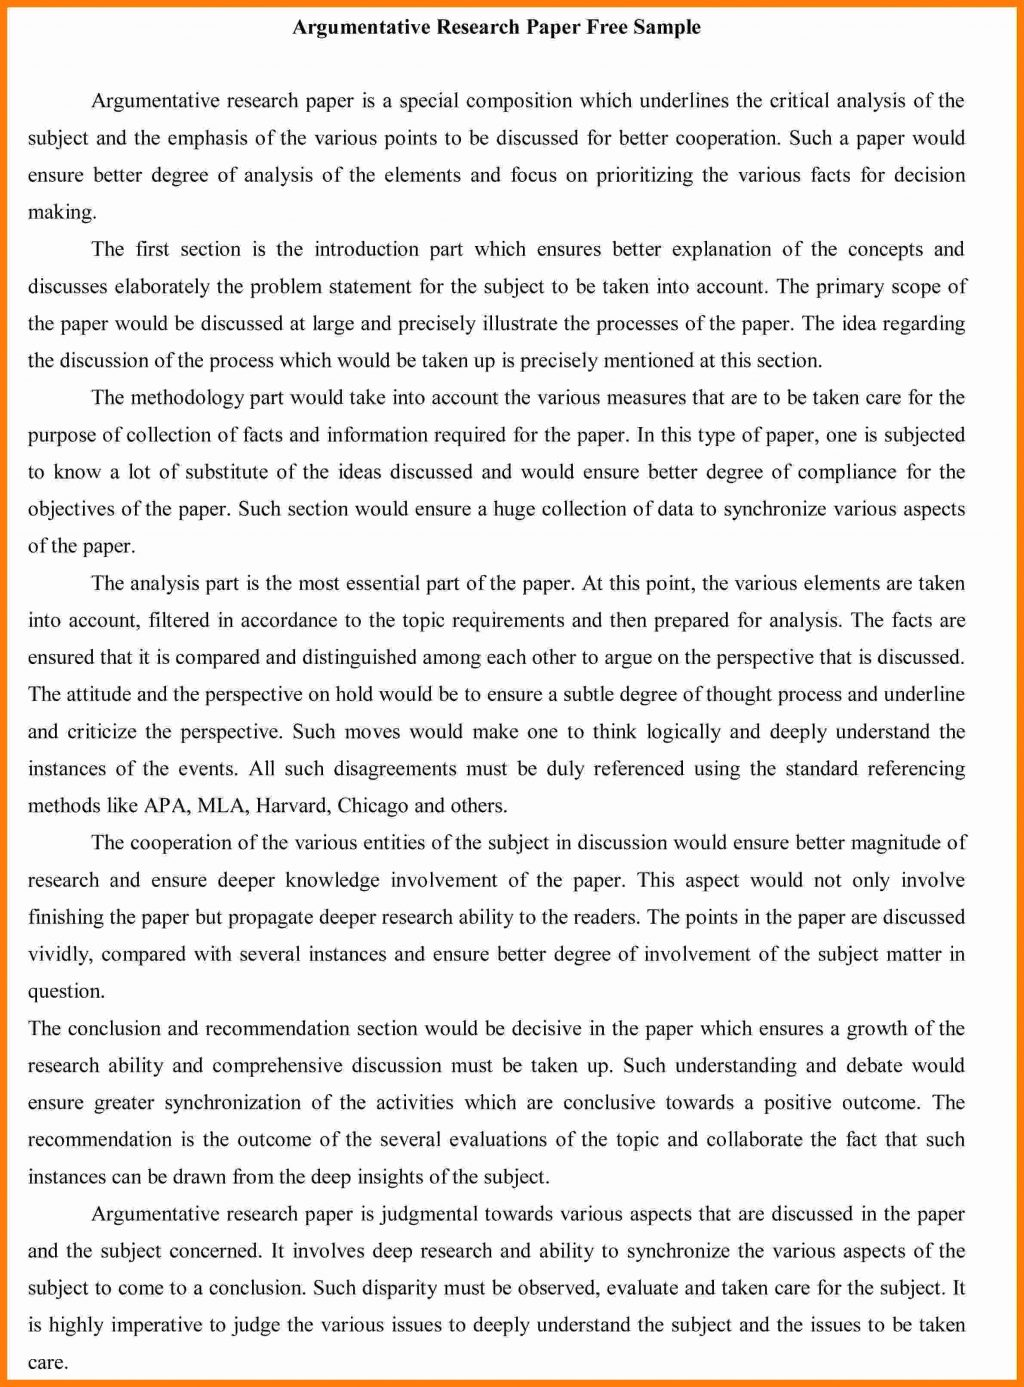 011 Research Paper Essays Uncategorized Aids Academic Writing Illegal Immigration Topics20 1024x1387 Top Career Full